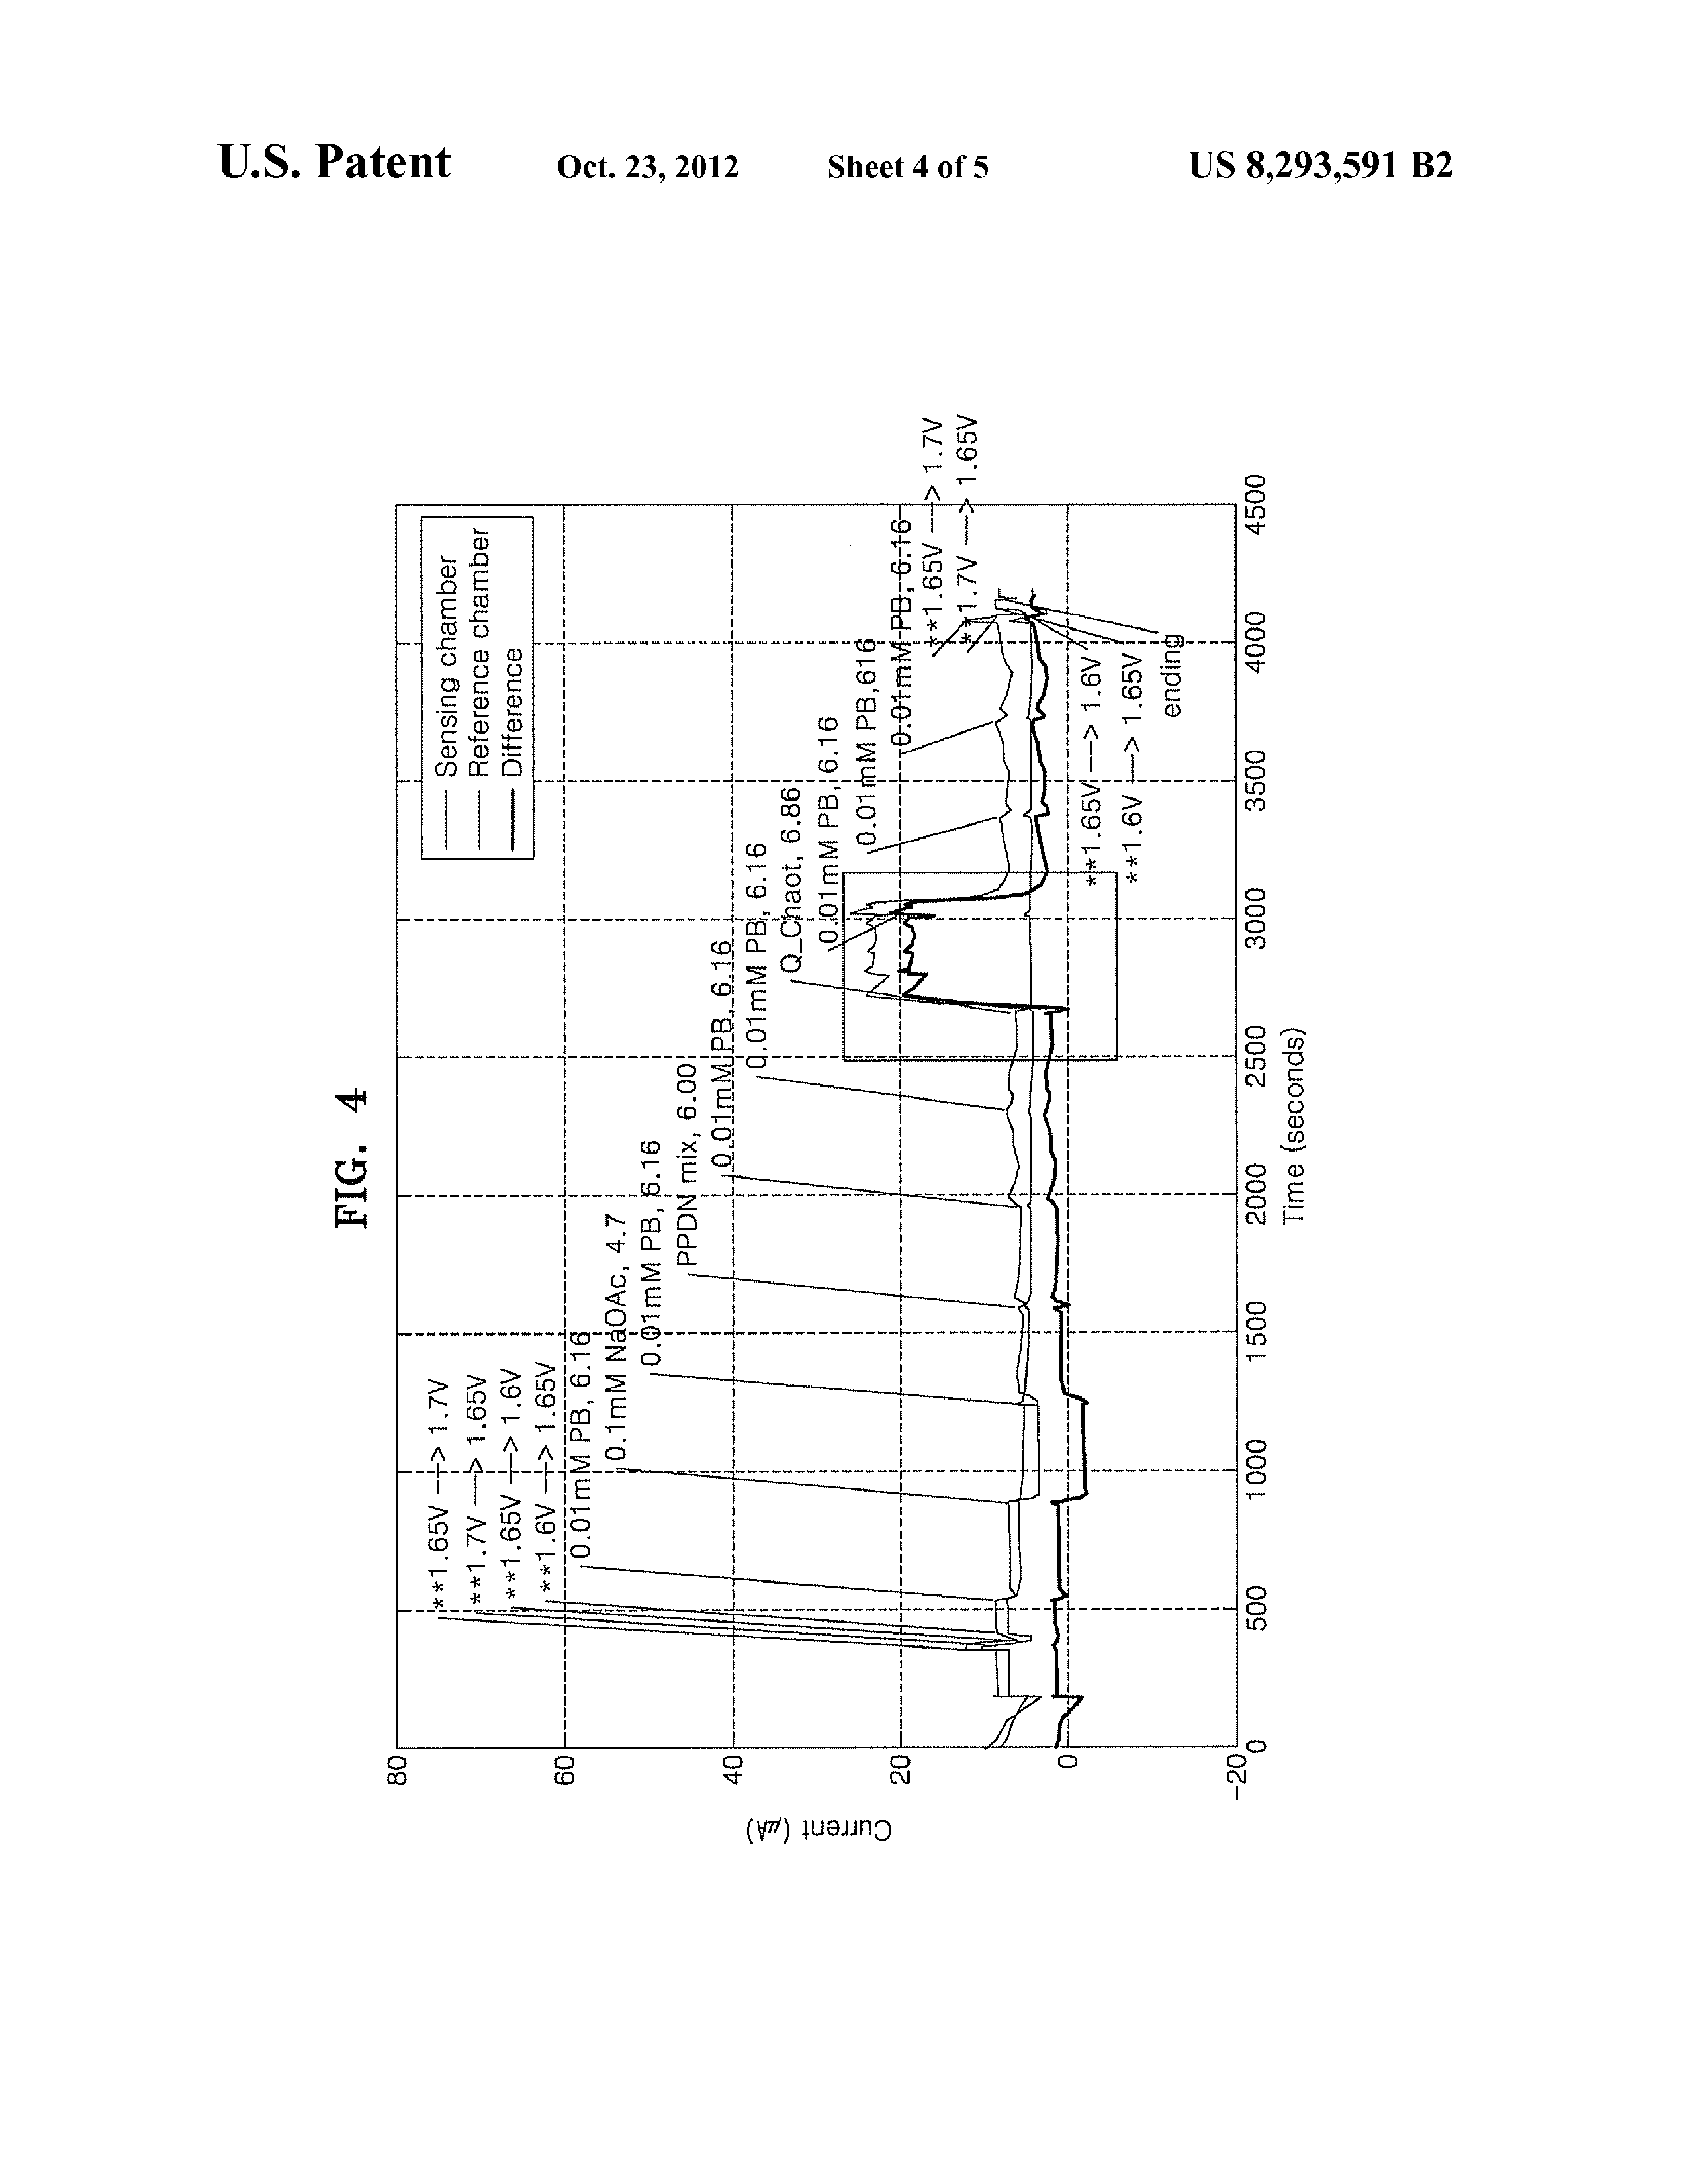 Field Effect Transistor Comprising Gold Layer